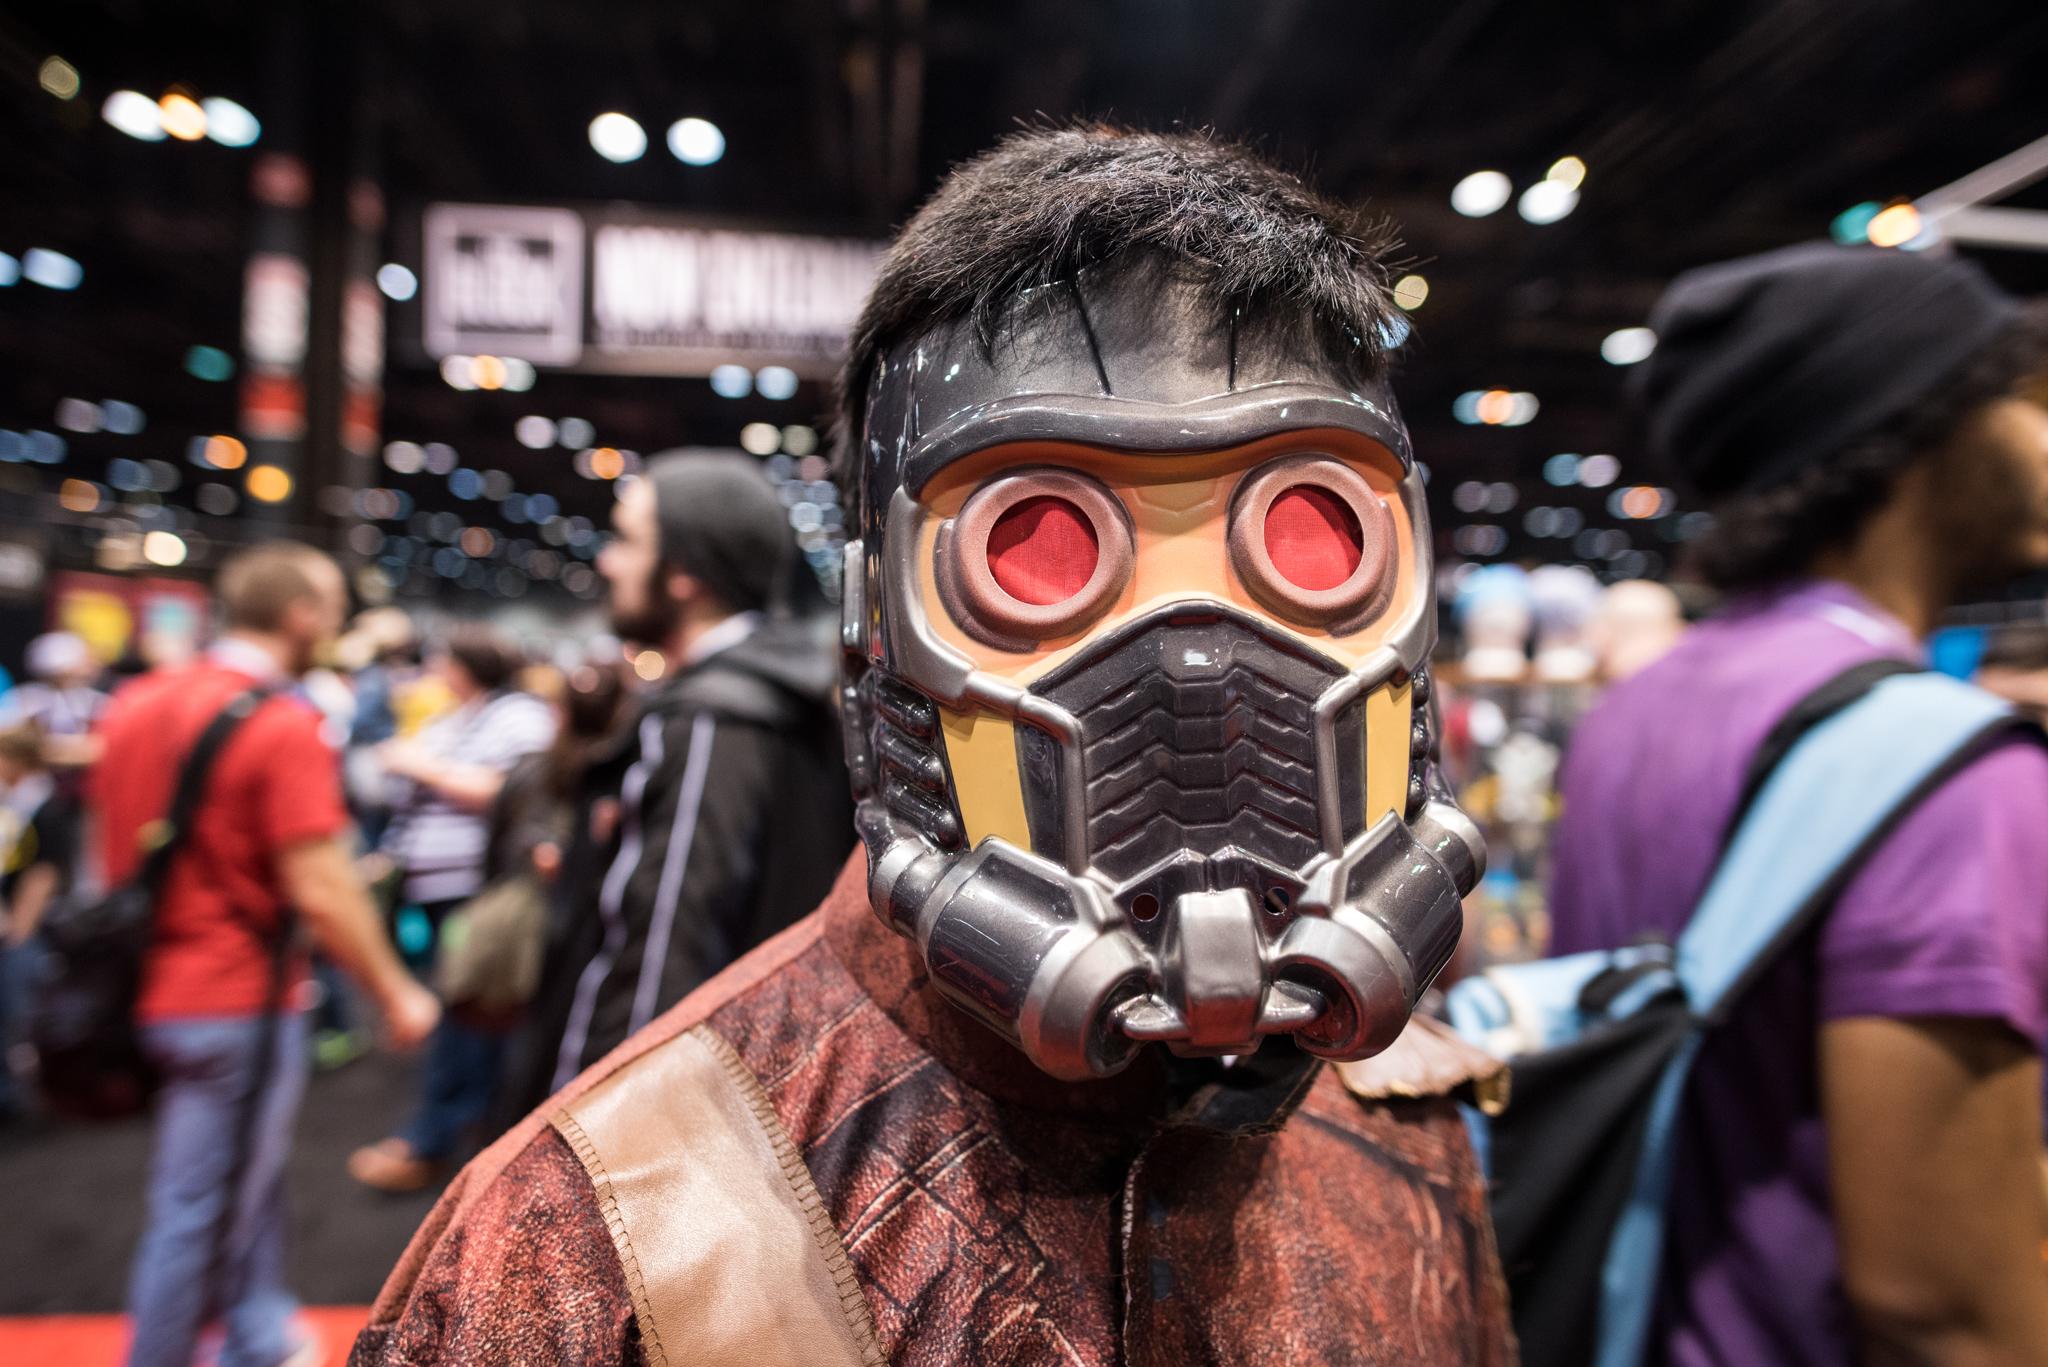 Fans, cosplayers and shelves of merch filled the floor at C2E2, April 25, 2015.